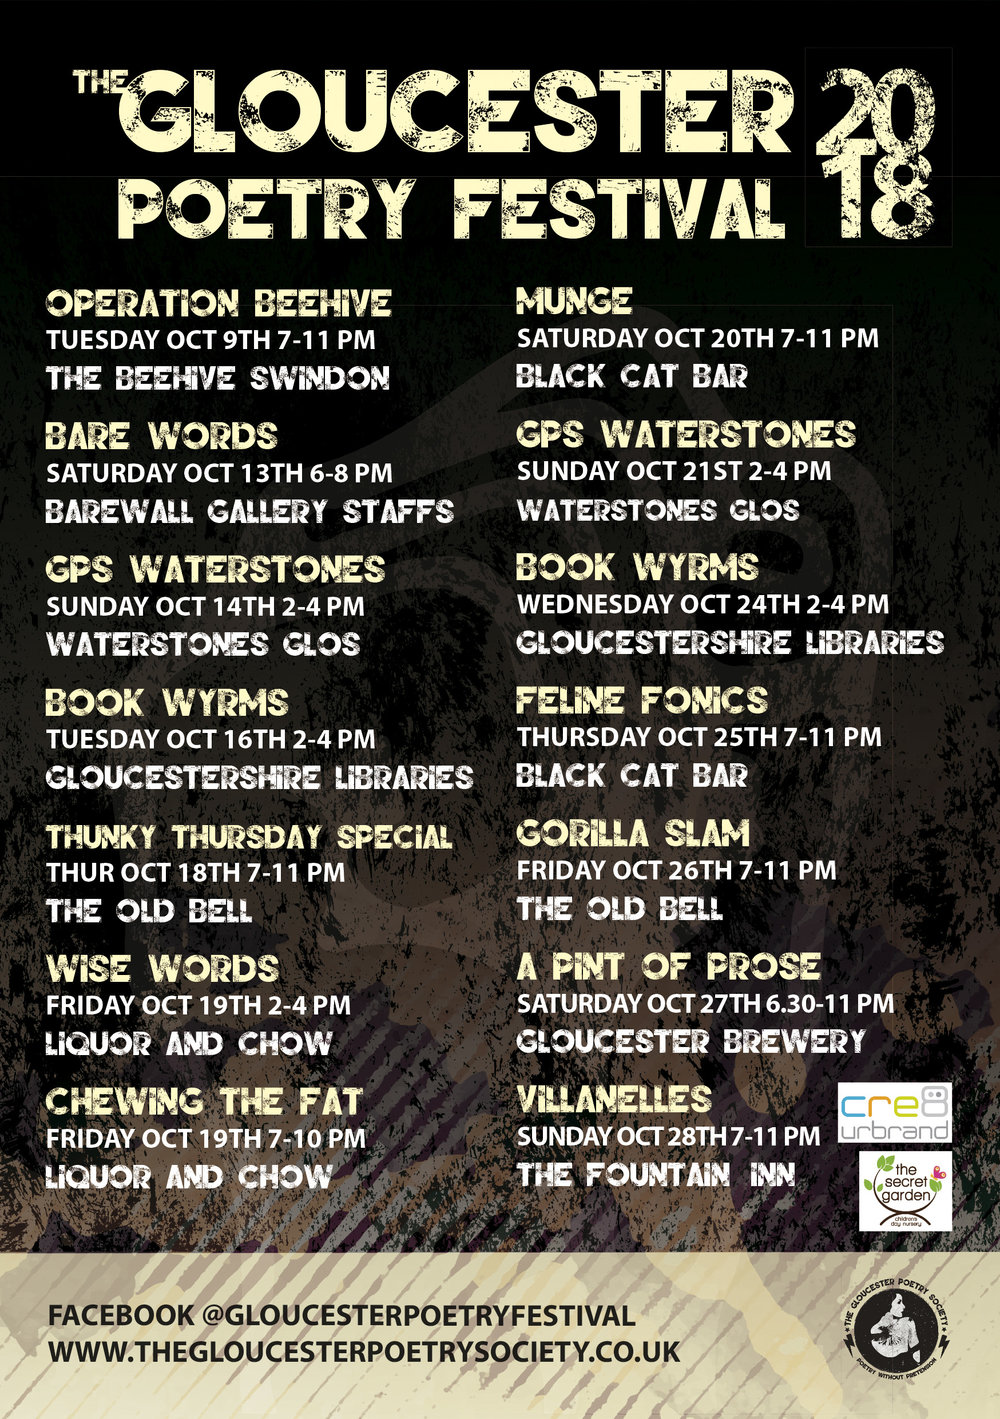 Gloucester Poetry Festival Flyer 2018.jpg